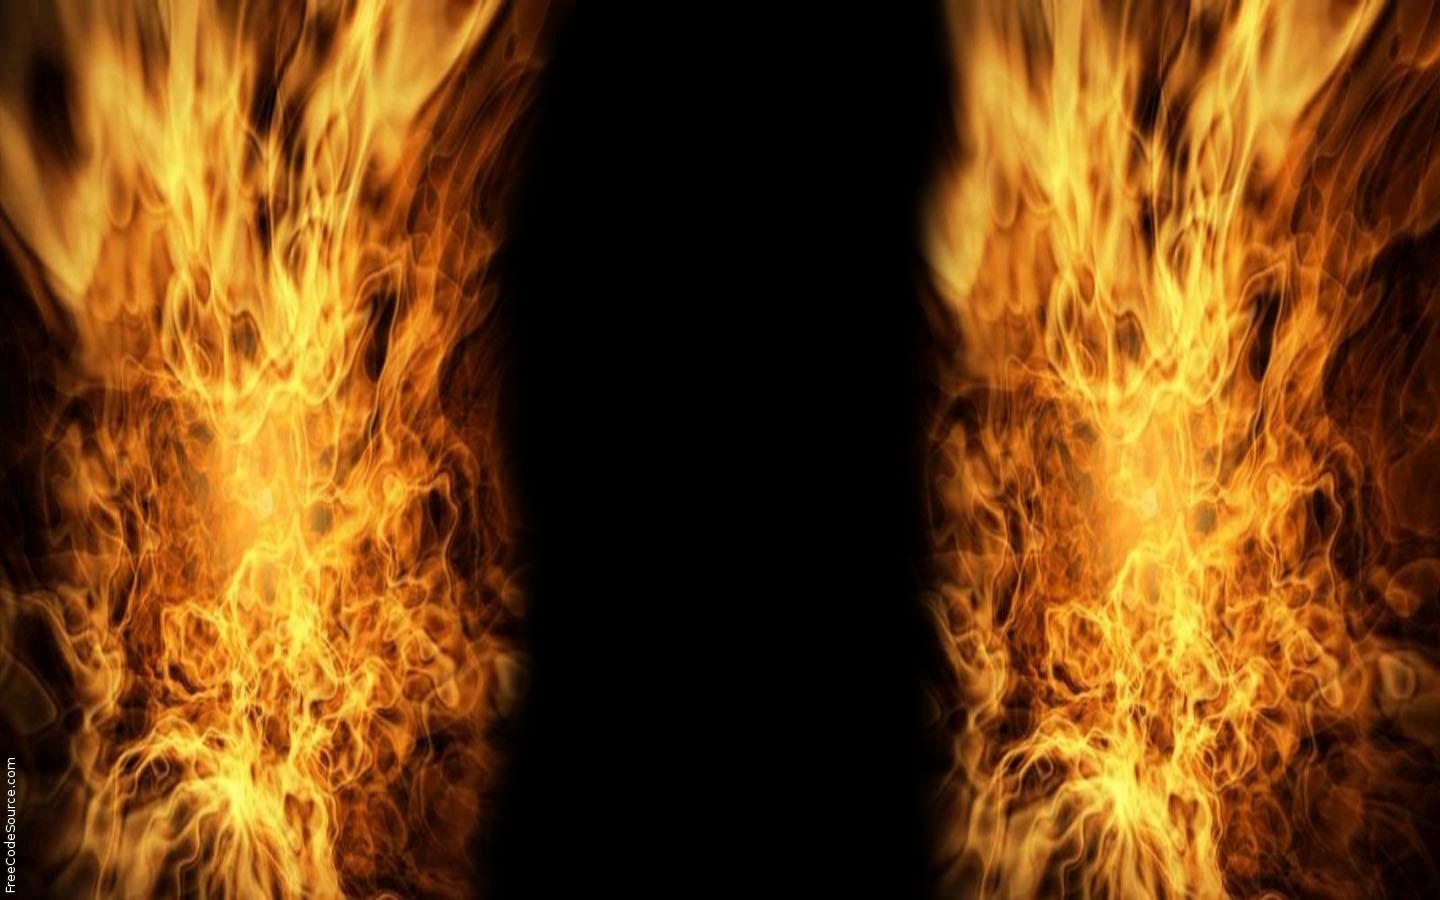 cool flames wallpapers 500 collection hd wallpaper